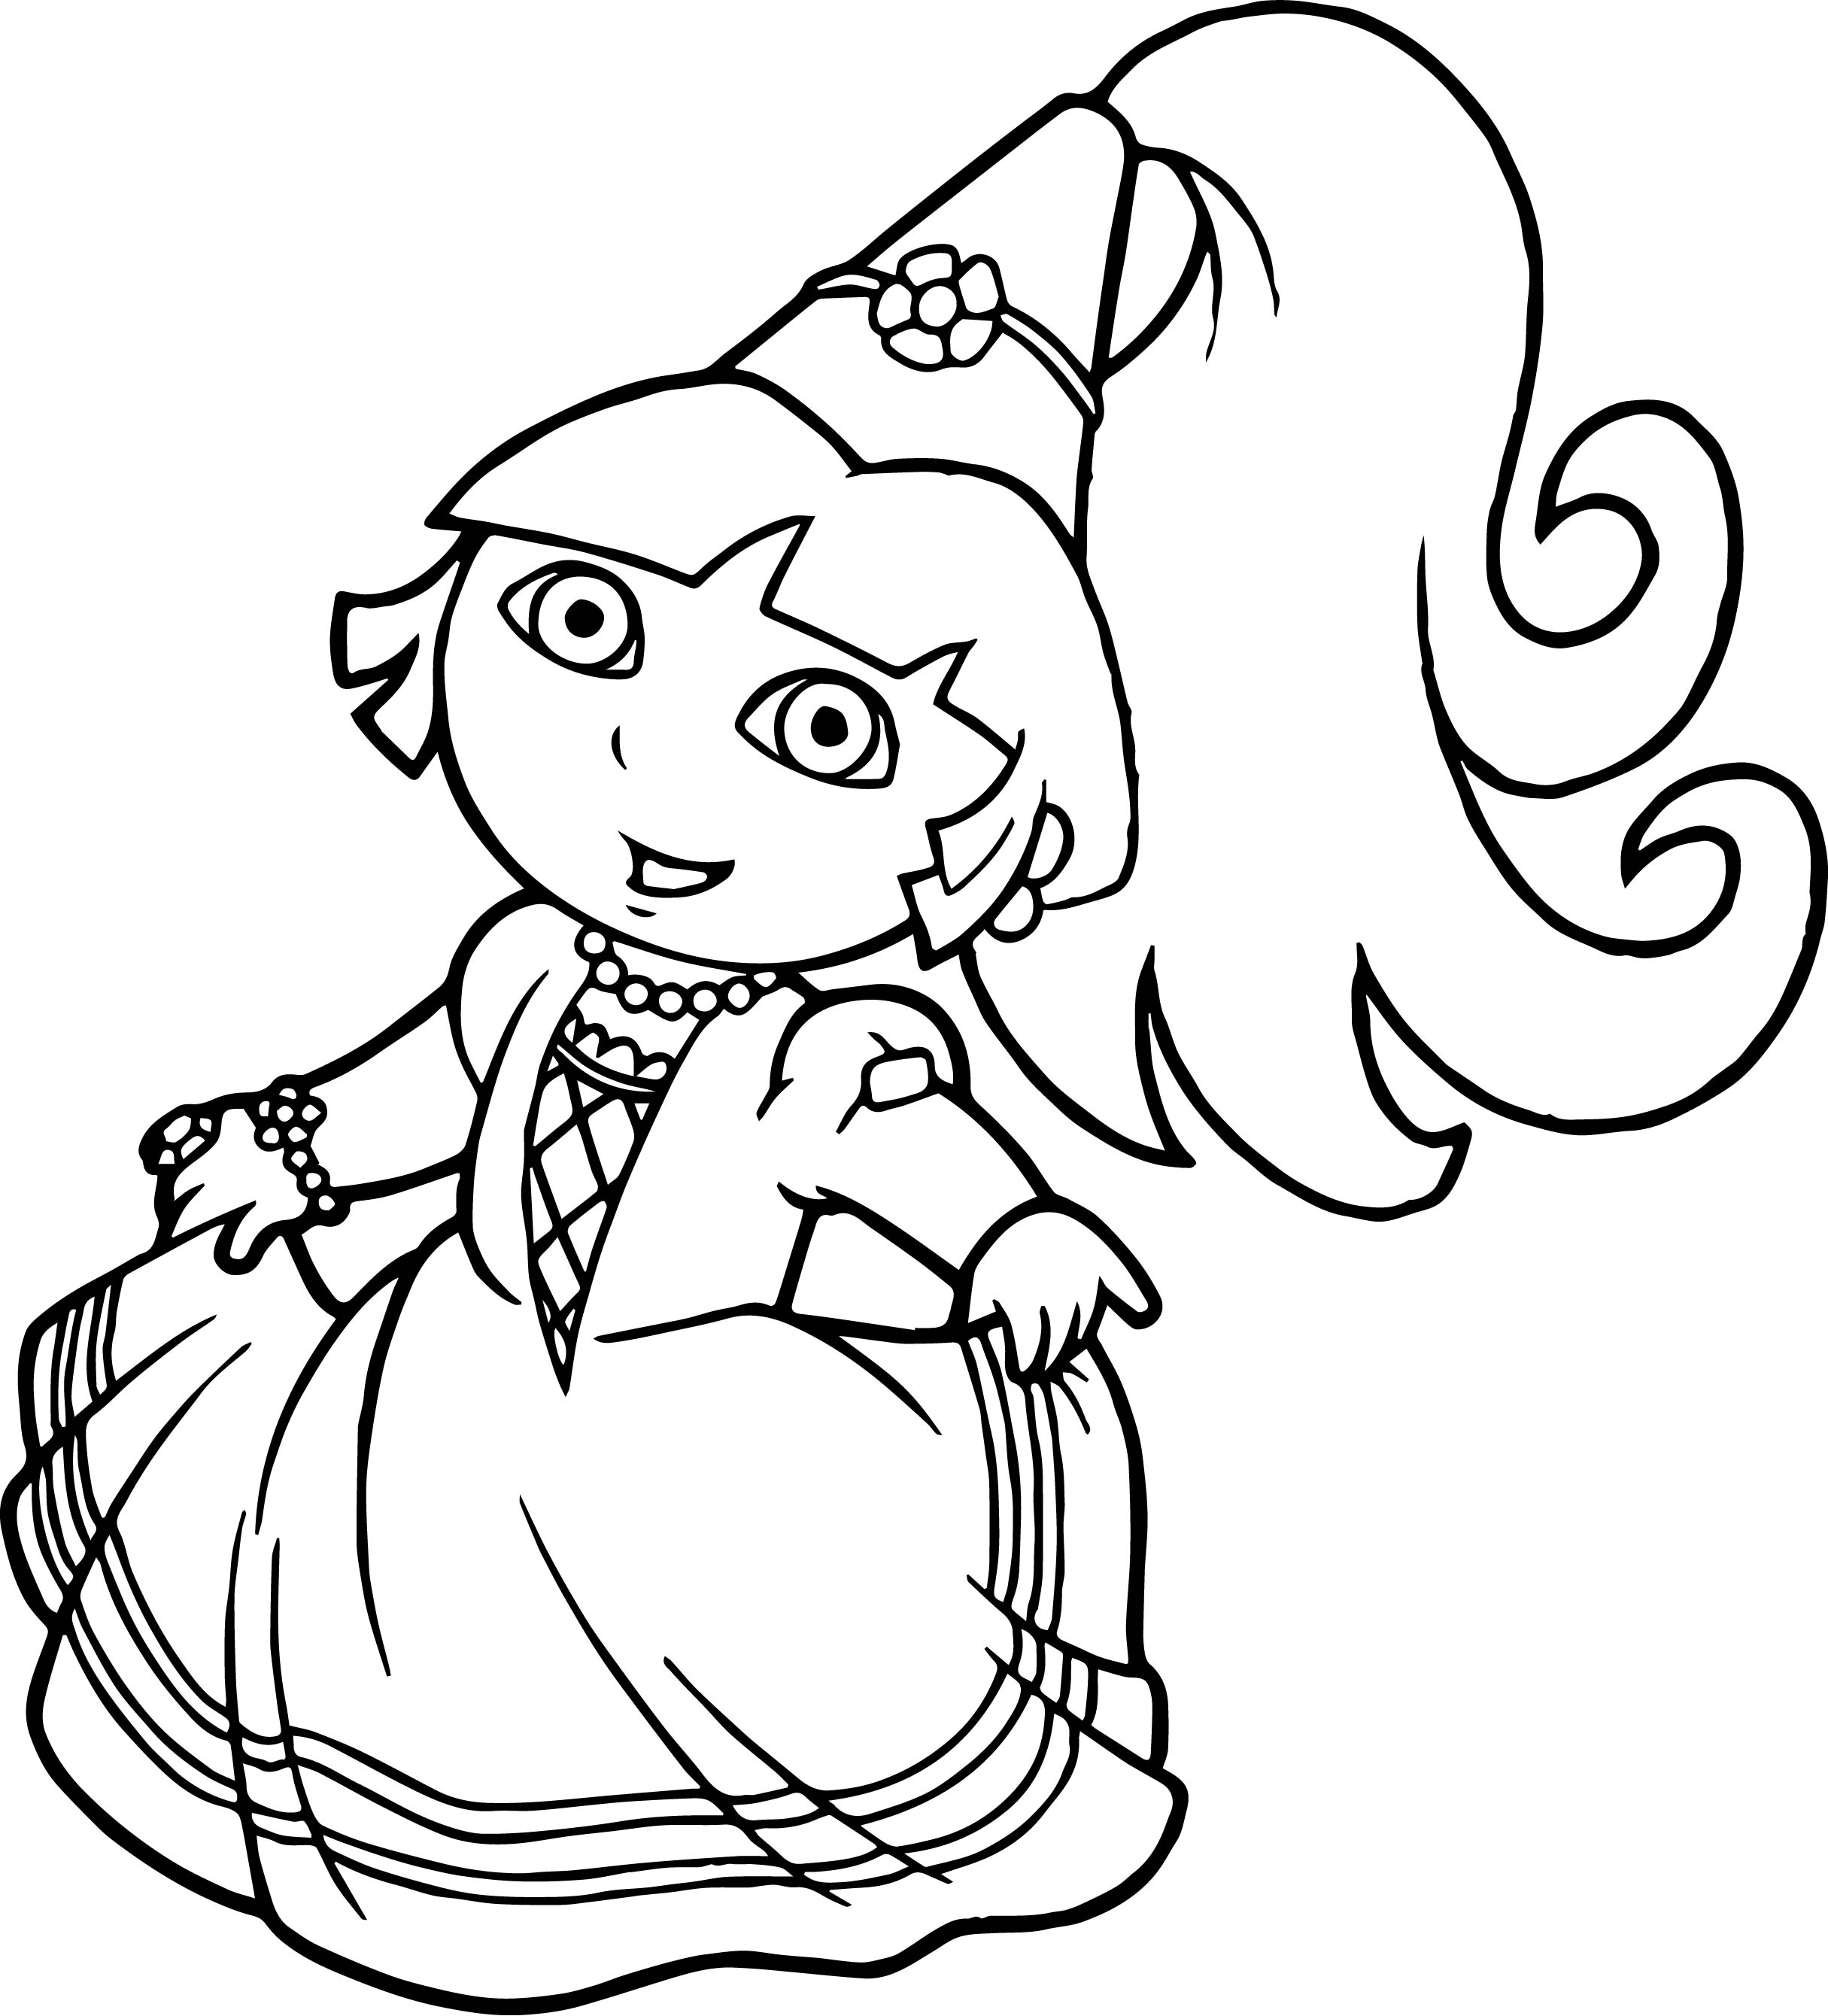 dora coloring pages free - best beautiful princess dora the explorer coloring pages